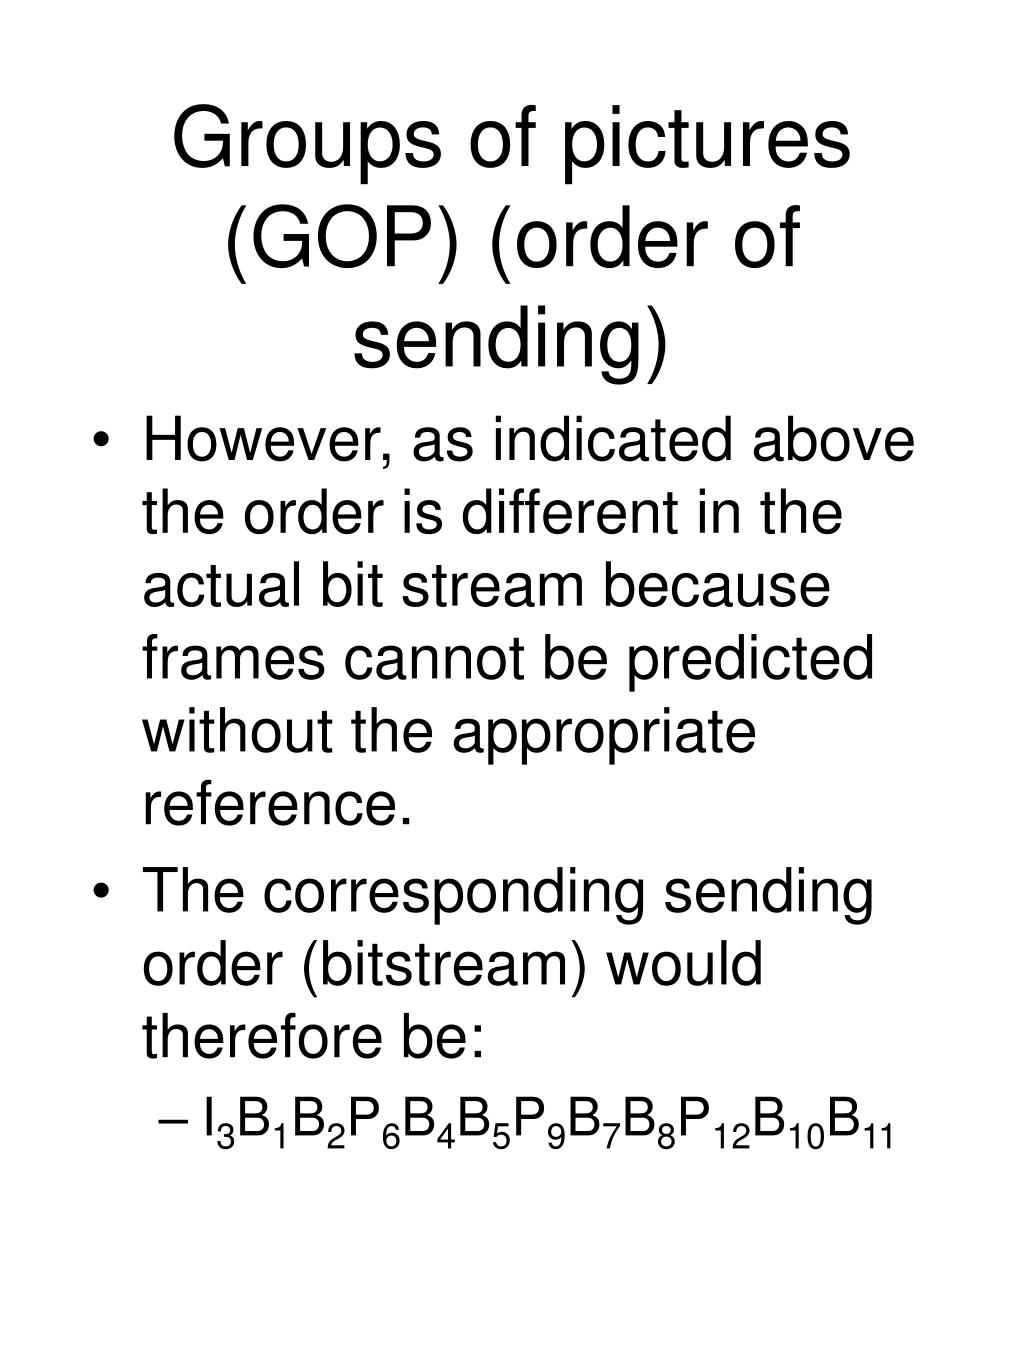 Groups of pictures (GOP) (order of sending)